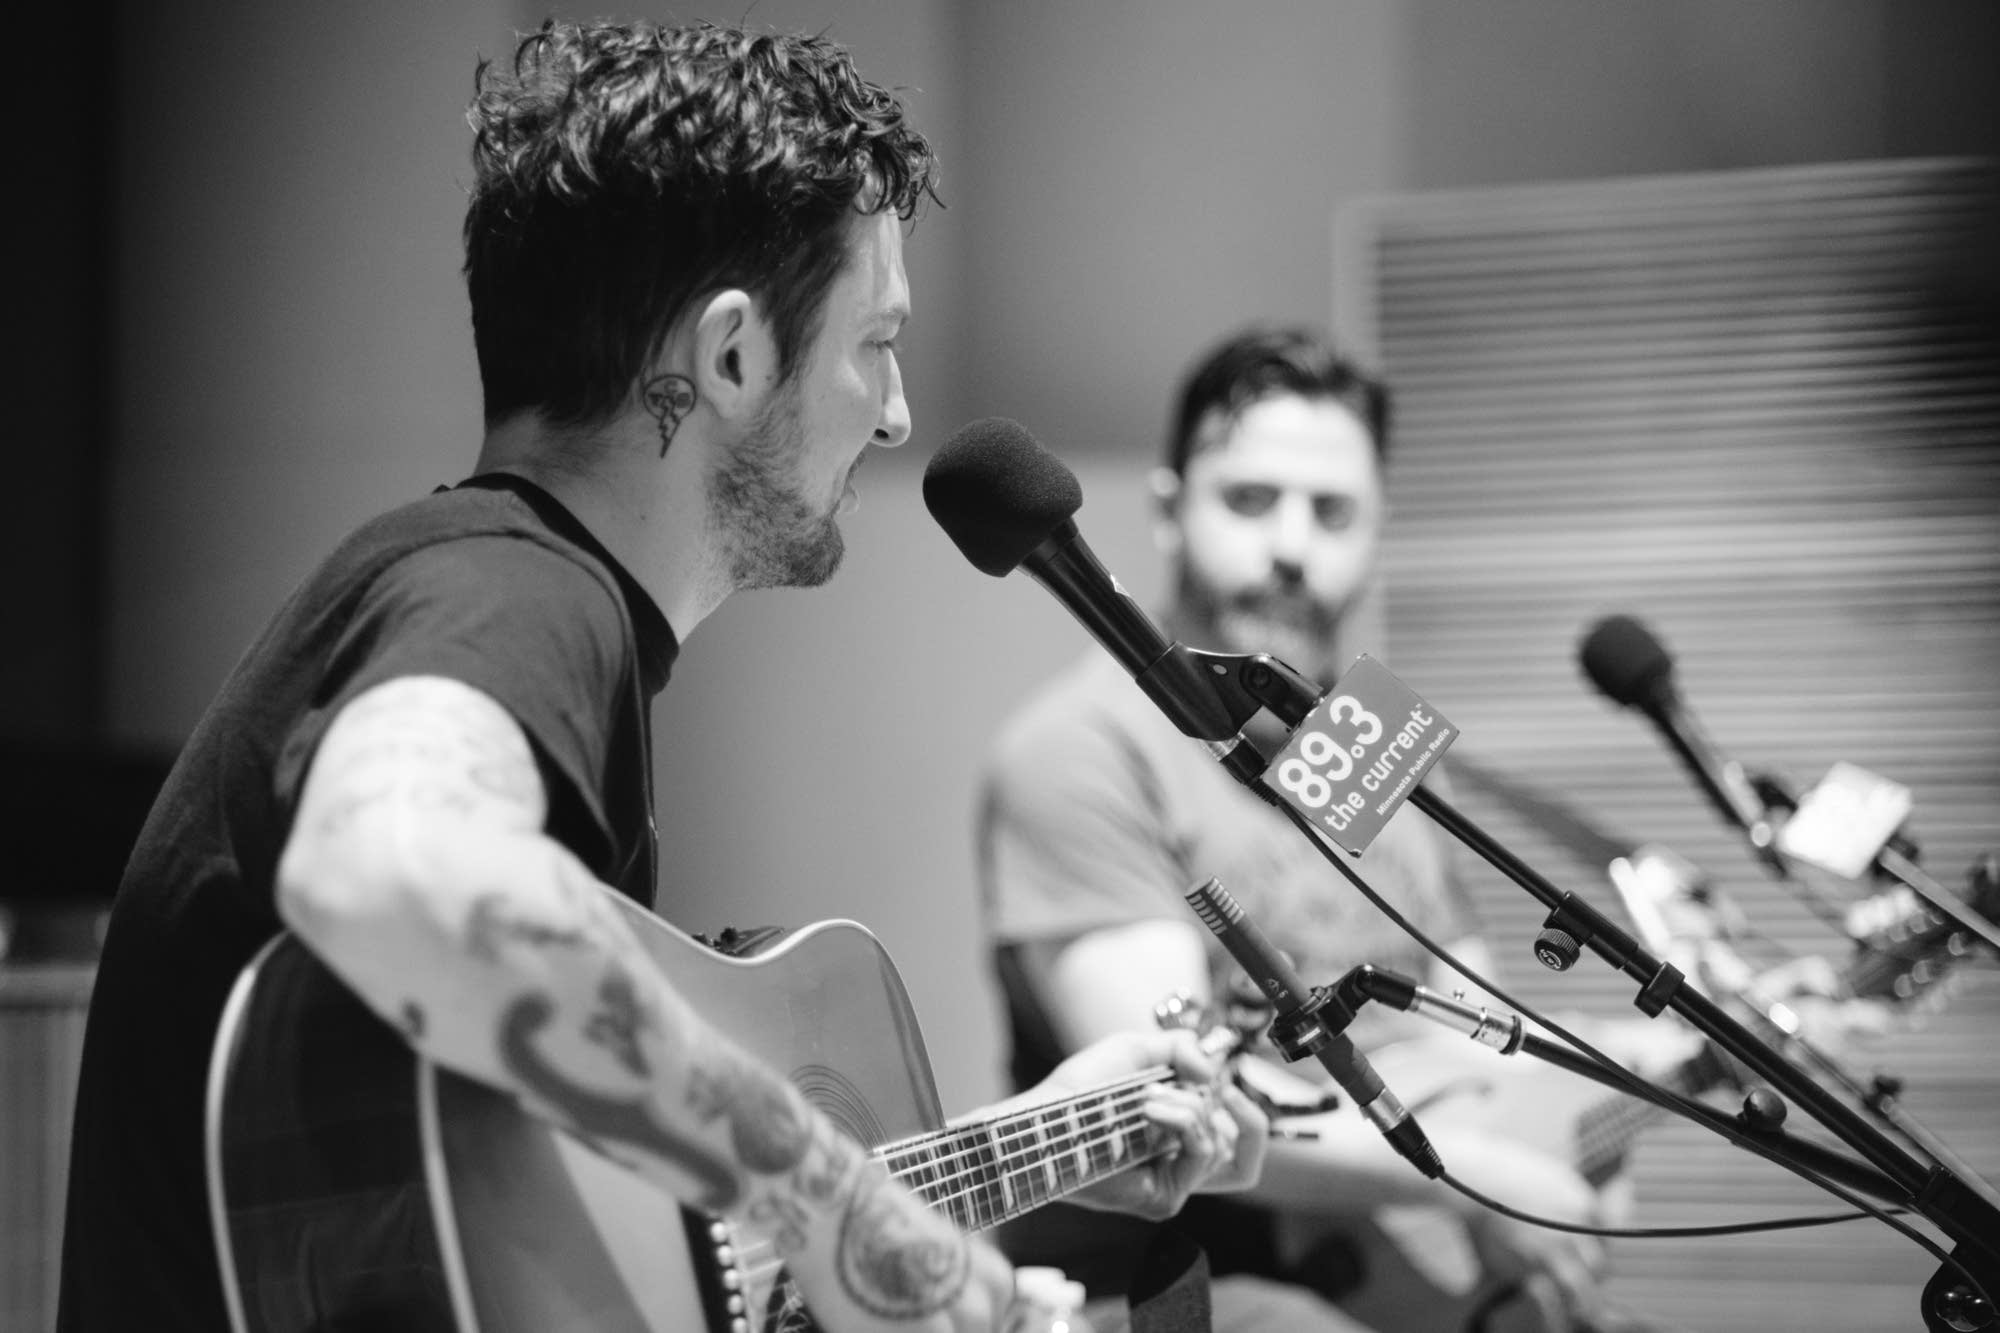 Frank Turner performs in The Current studio